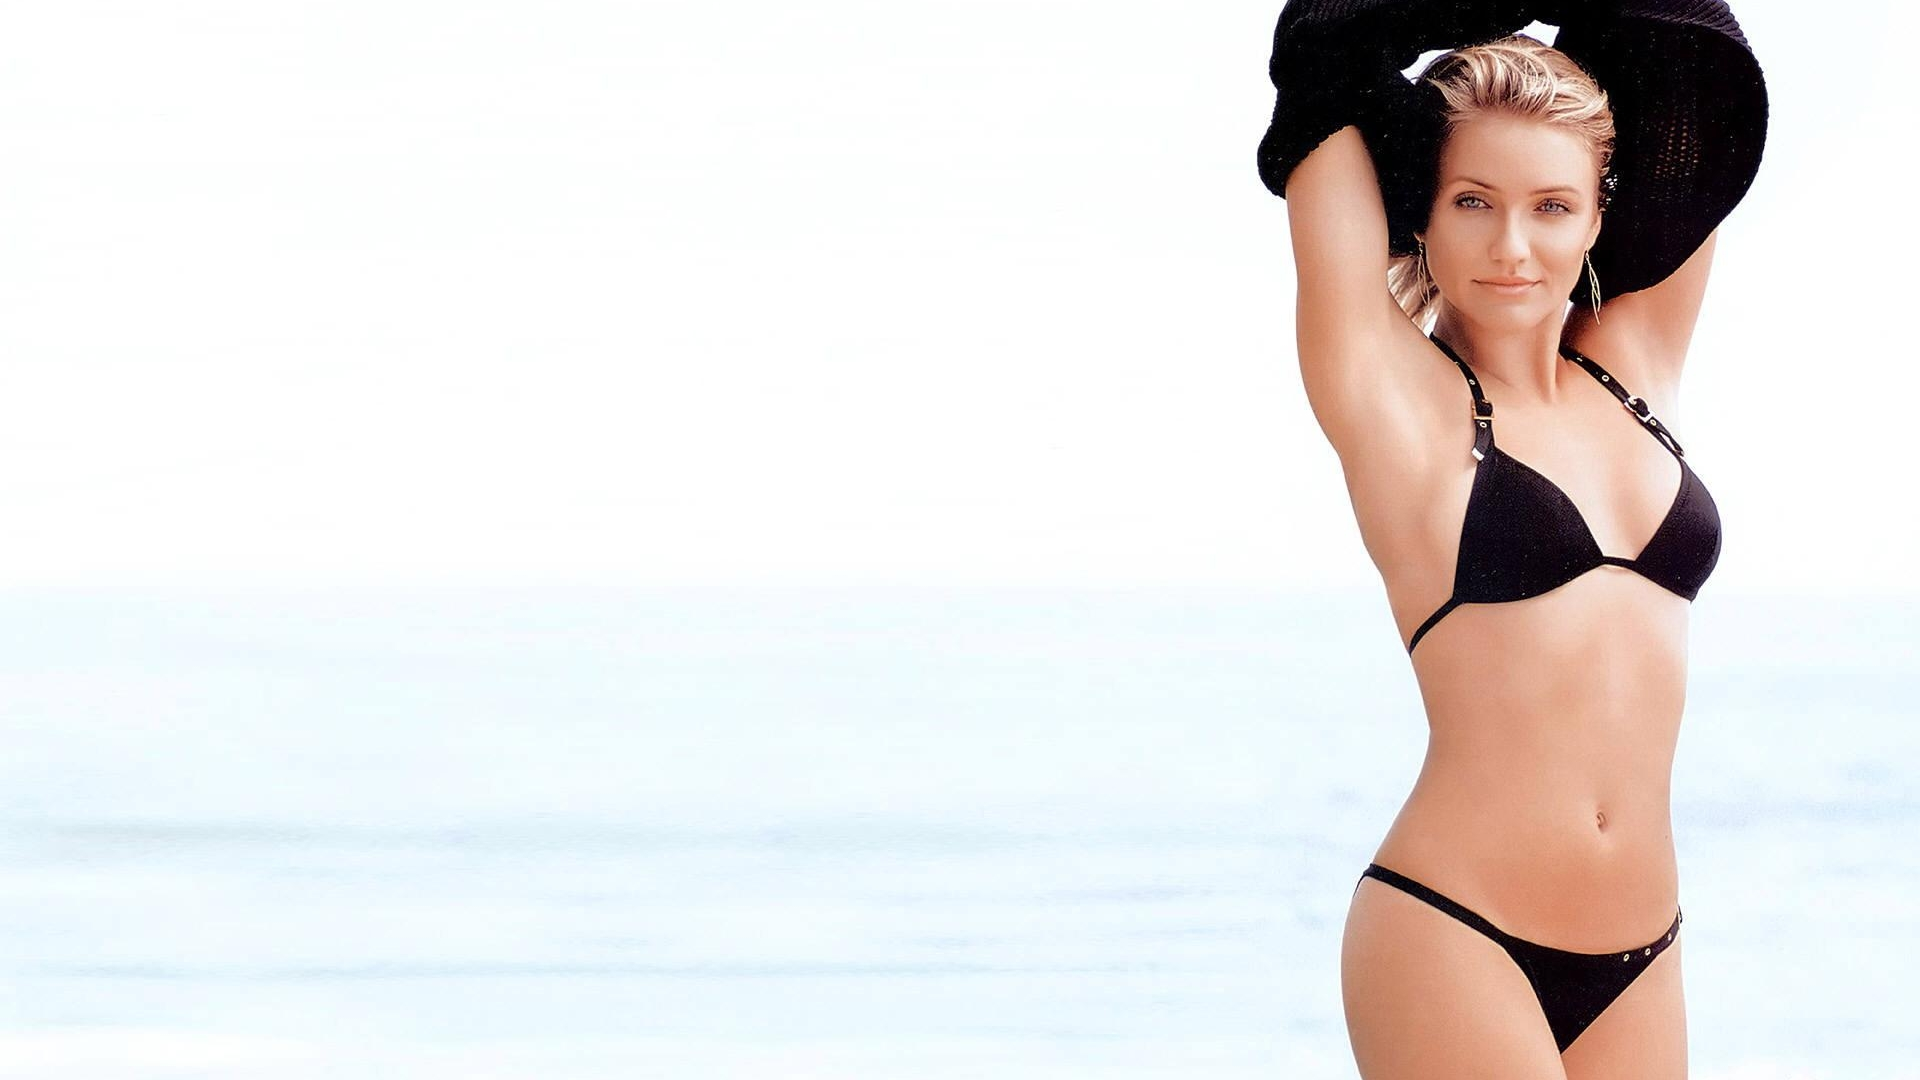 American_Actress_Cameron_Diaz_HD_bikini_Wallpapers